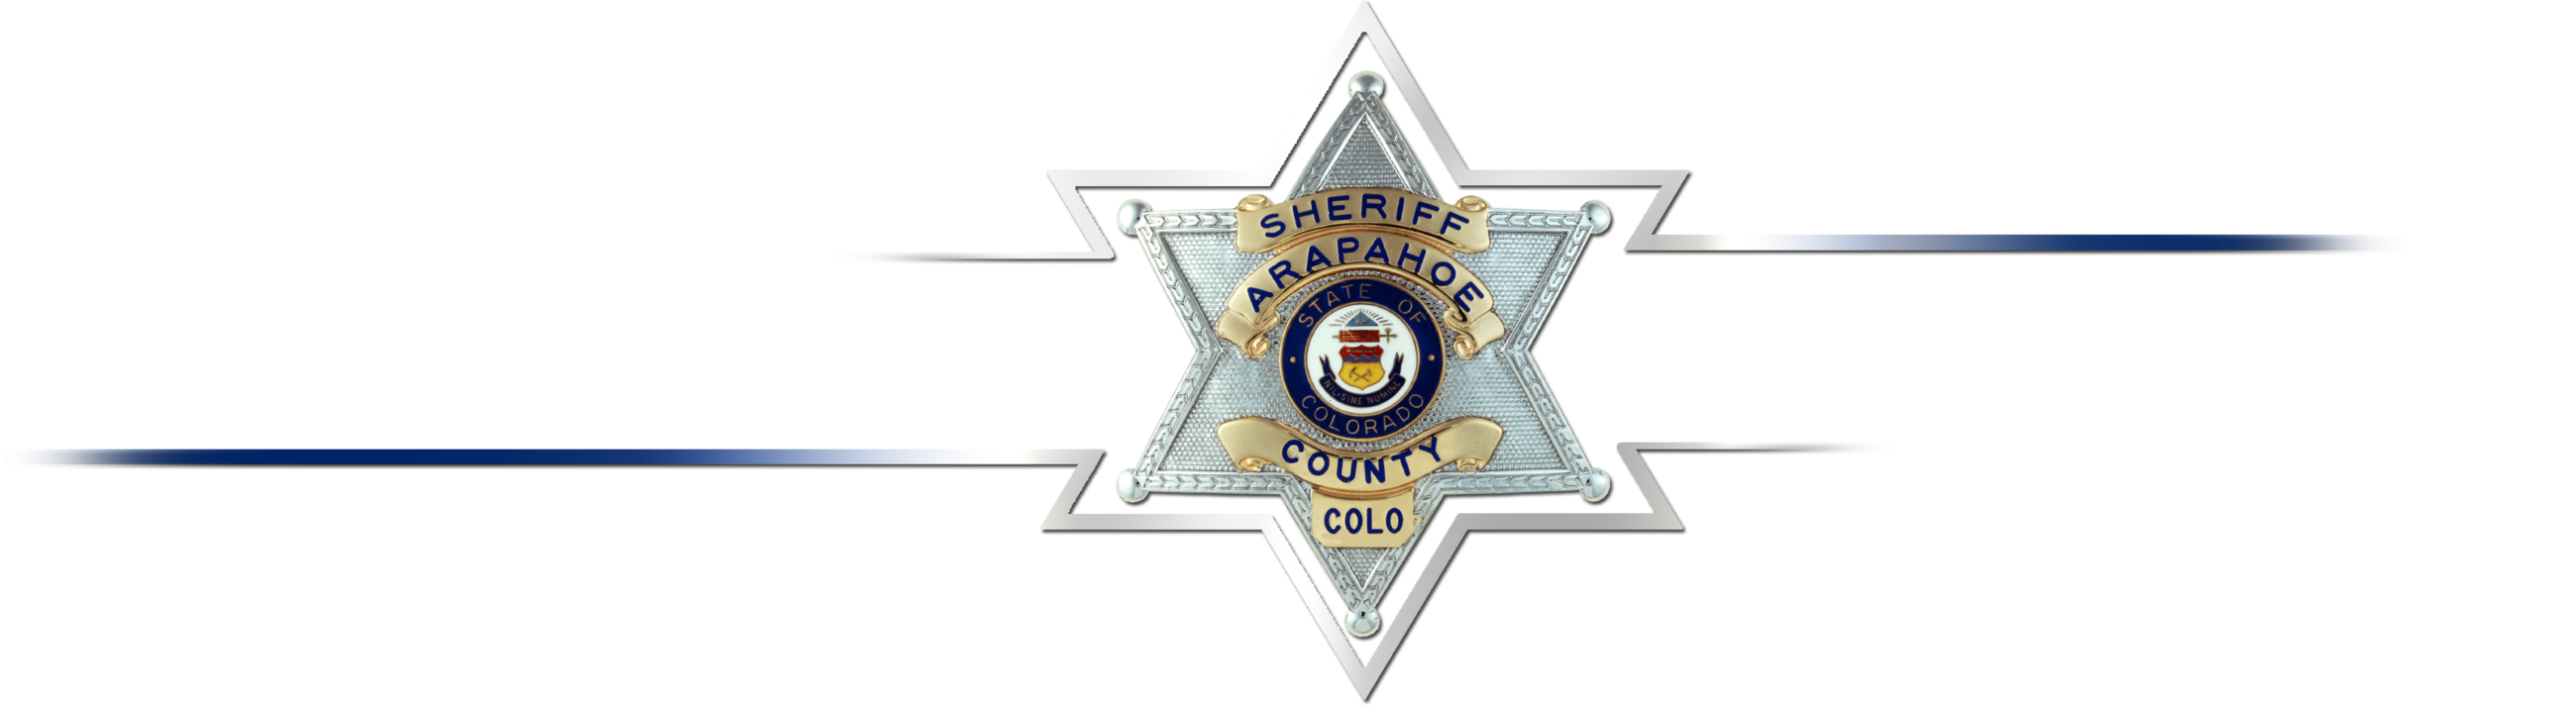 Inmate Information | Arapahoe County, CO - Official Website